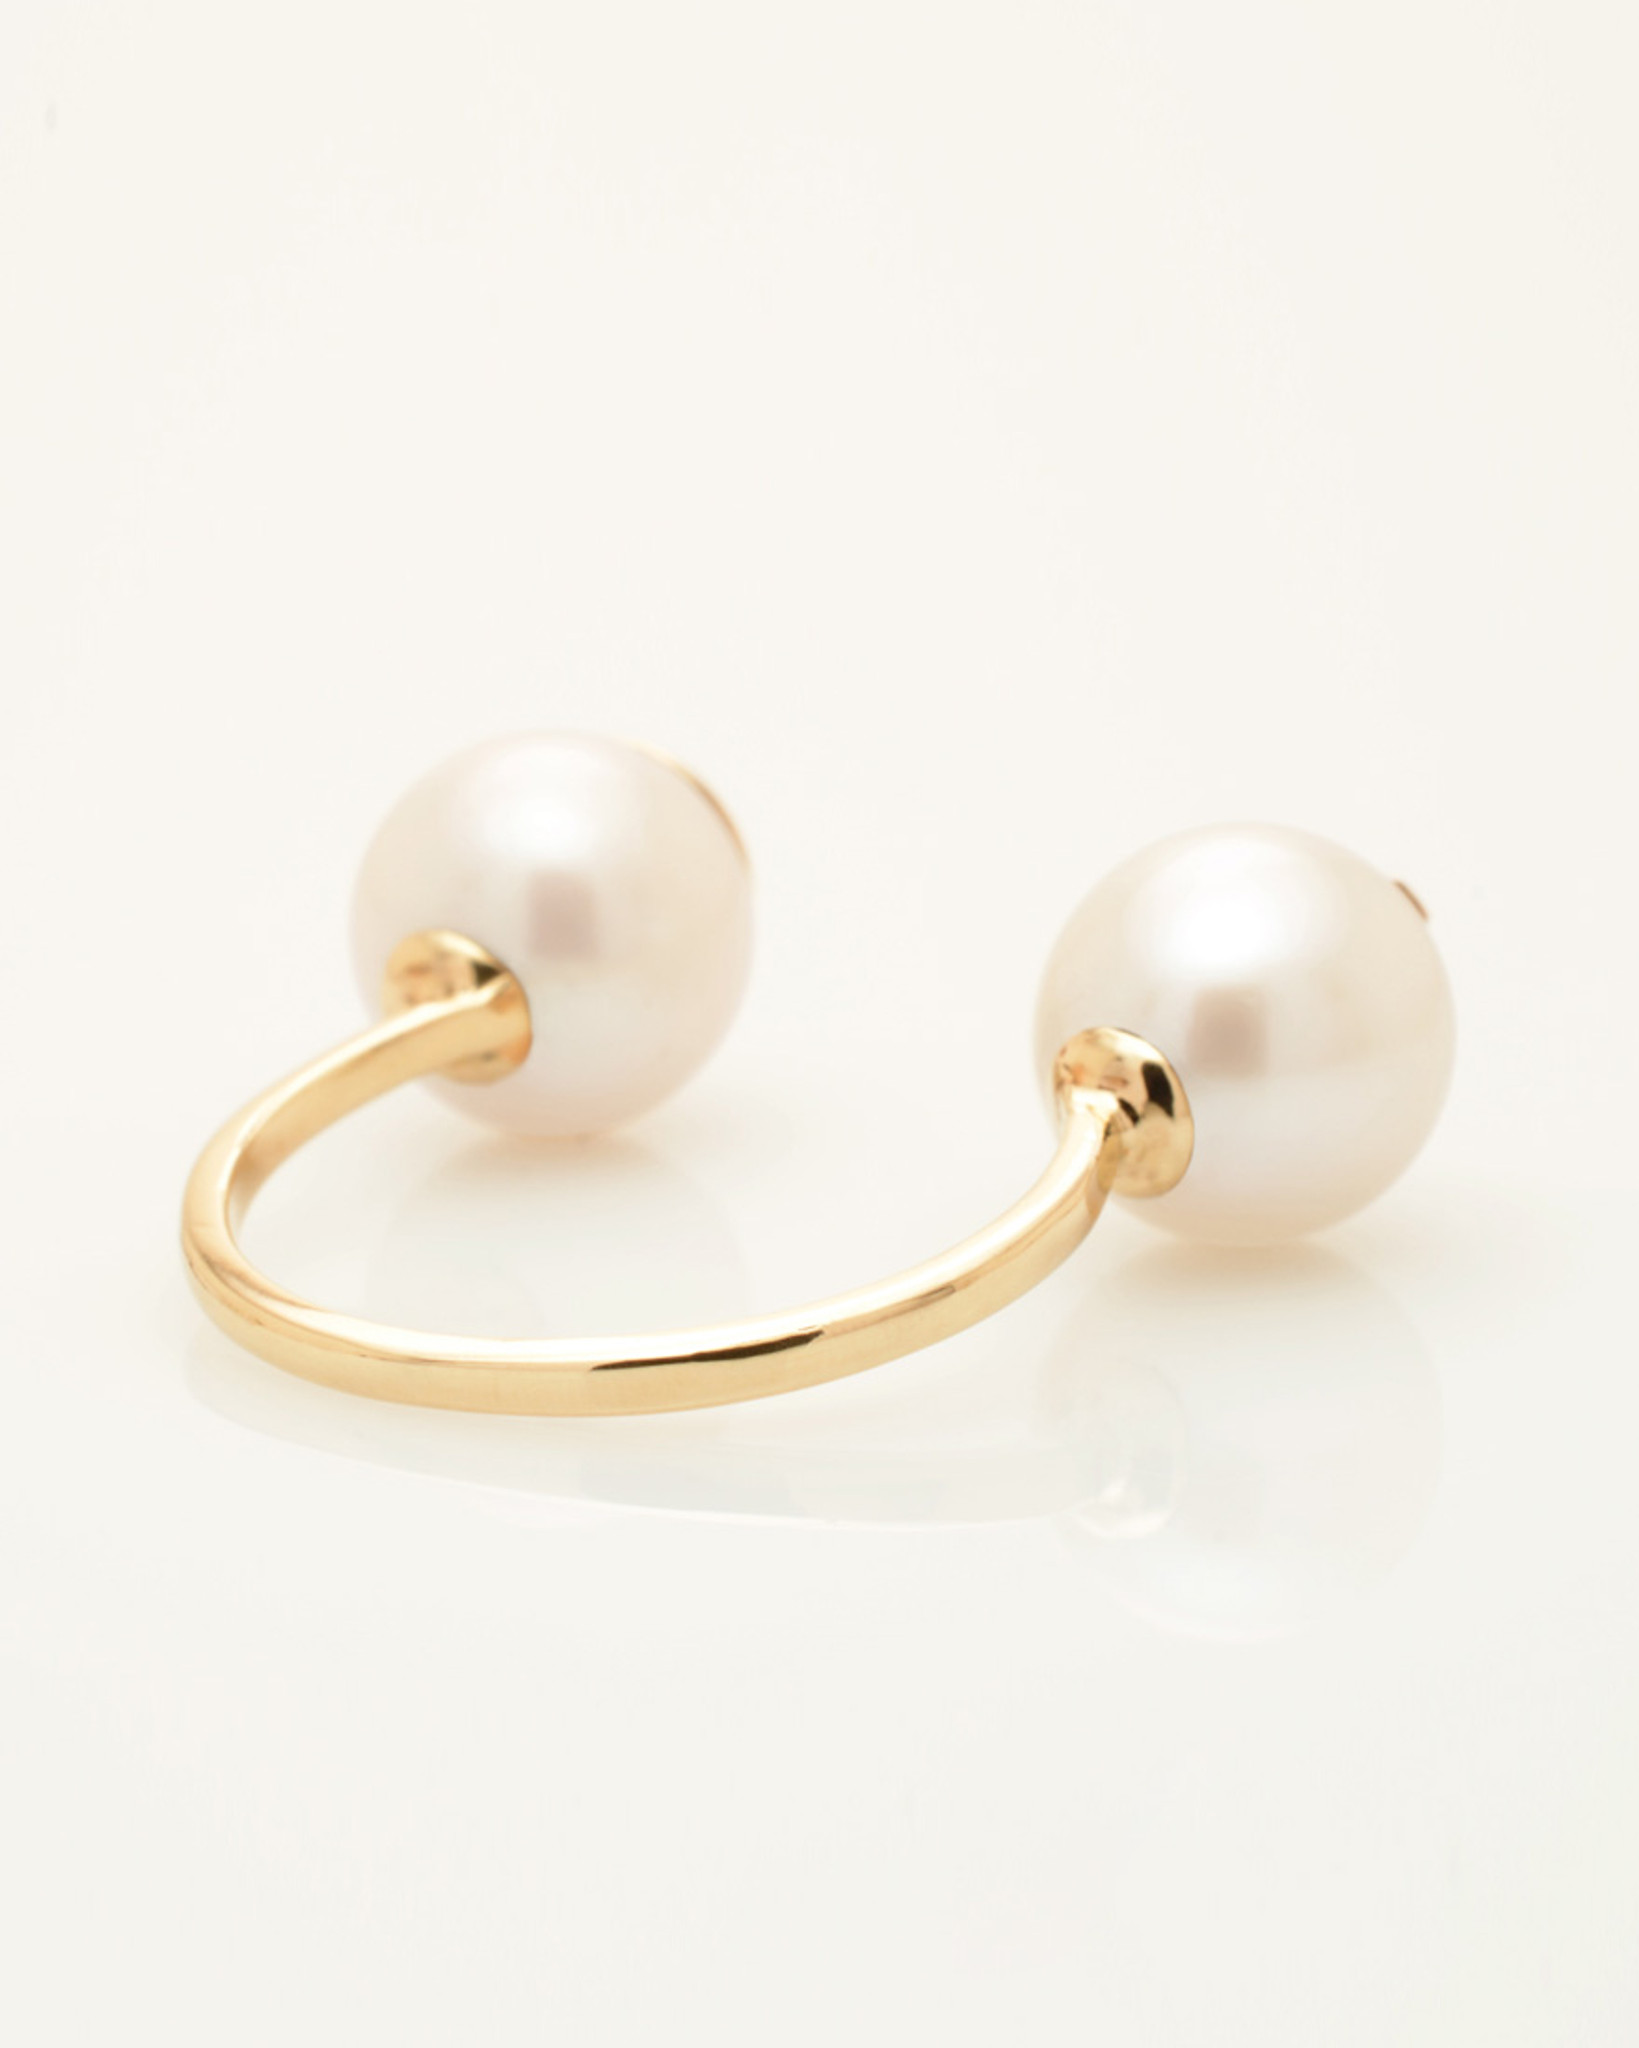 3/4 Back view of Cultured Freshwater Double Pearl Ring with 14k Gold XO Emoji by Nektar De Stagni (8-9 mm. Size 5-6-7)